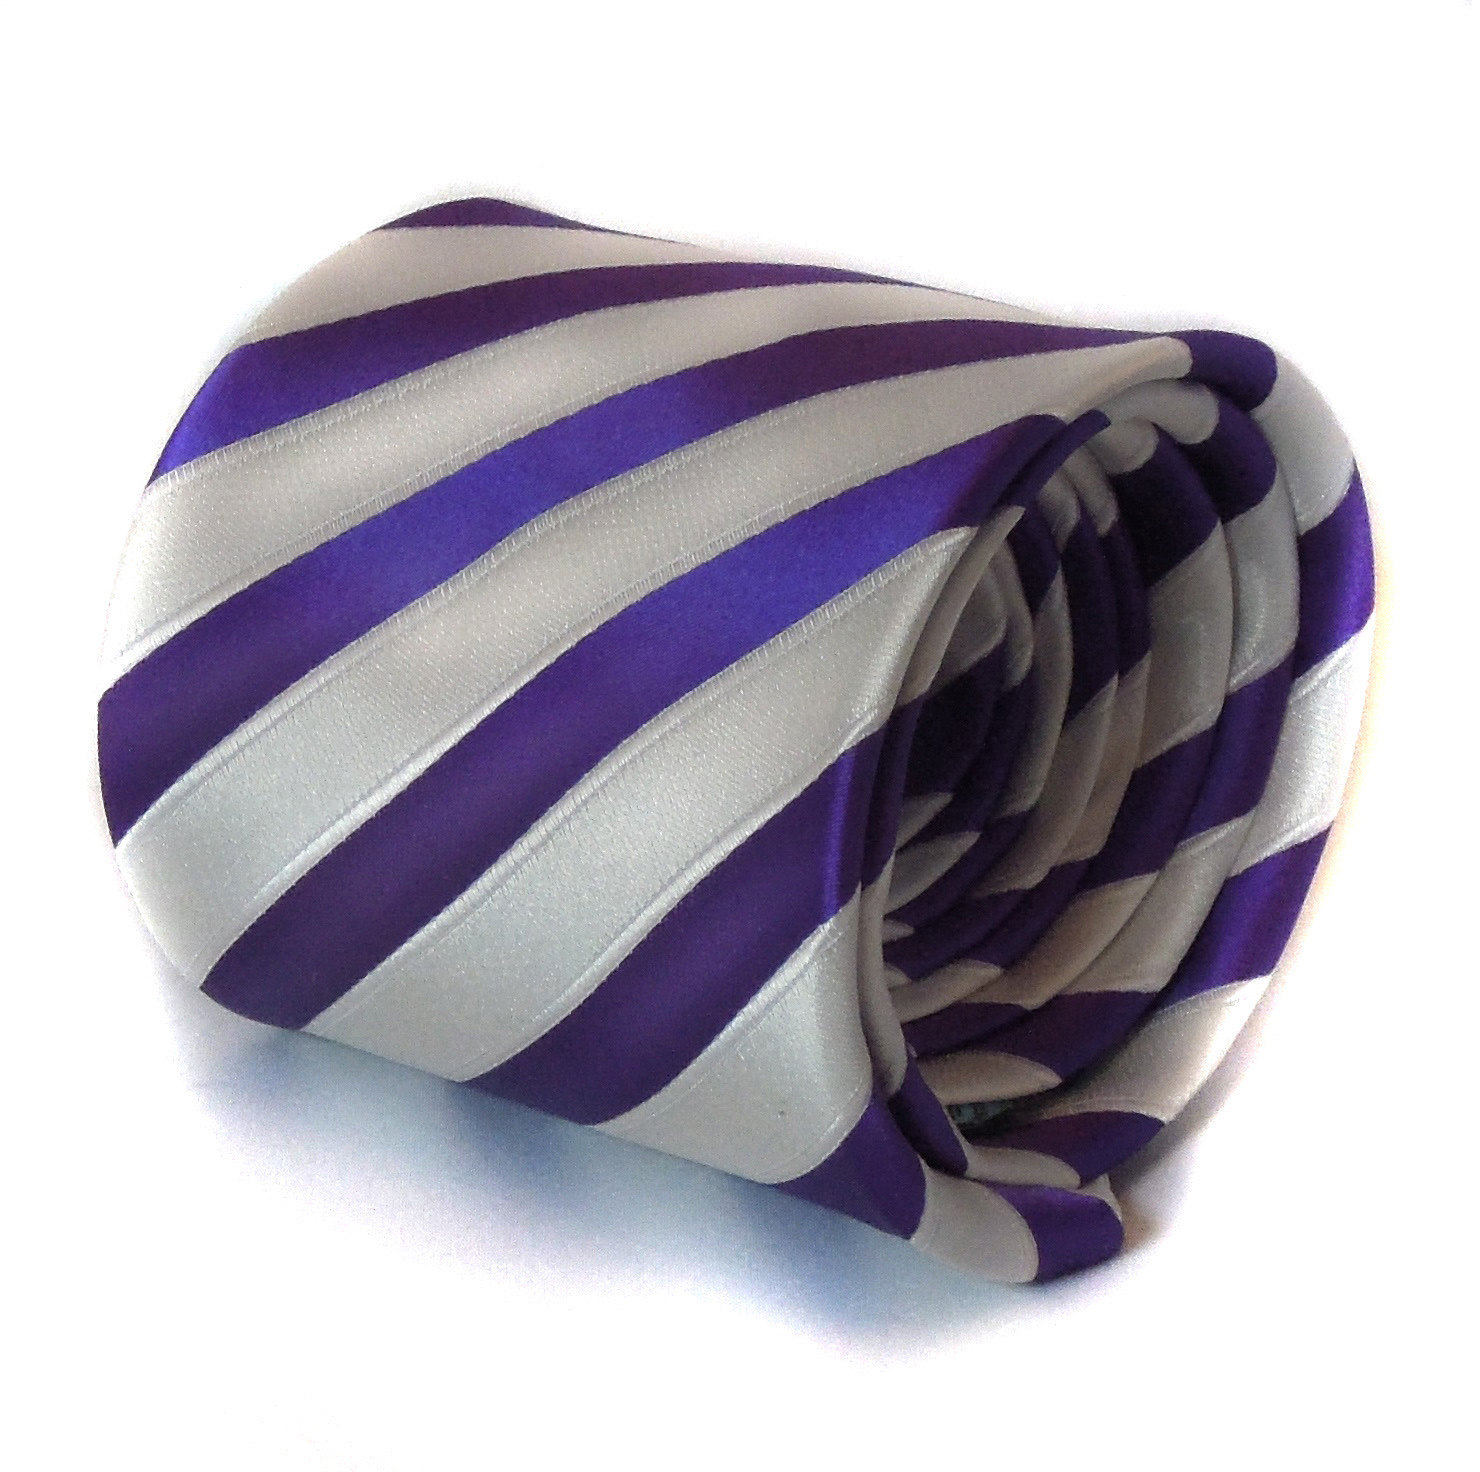 purple and white striped tie with signature floral design to rear by Frederick T